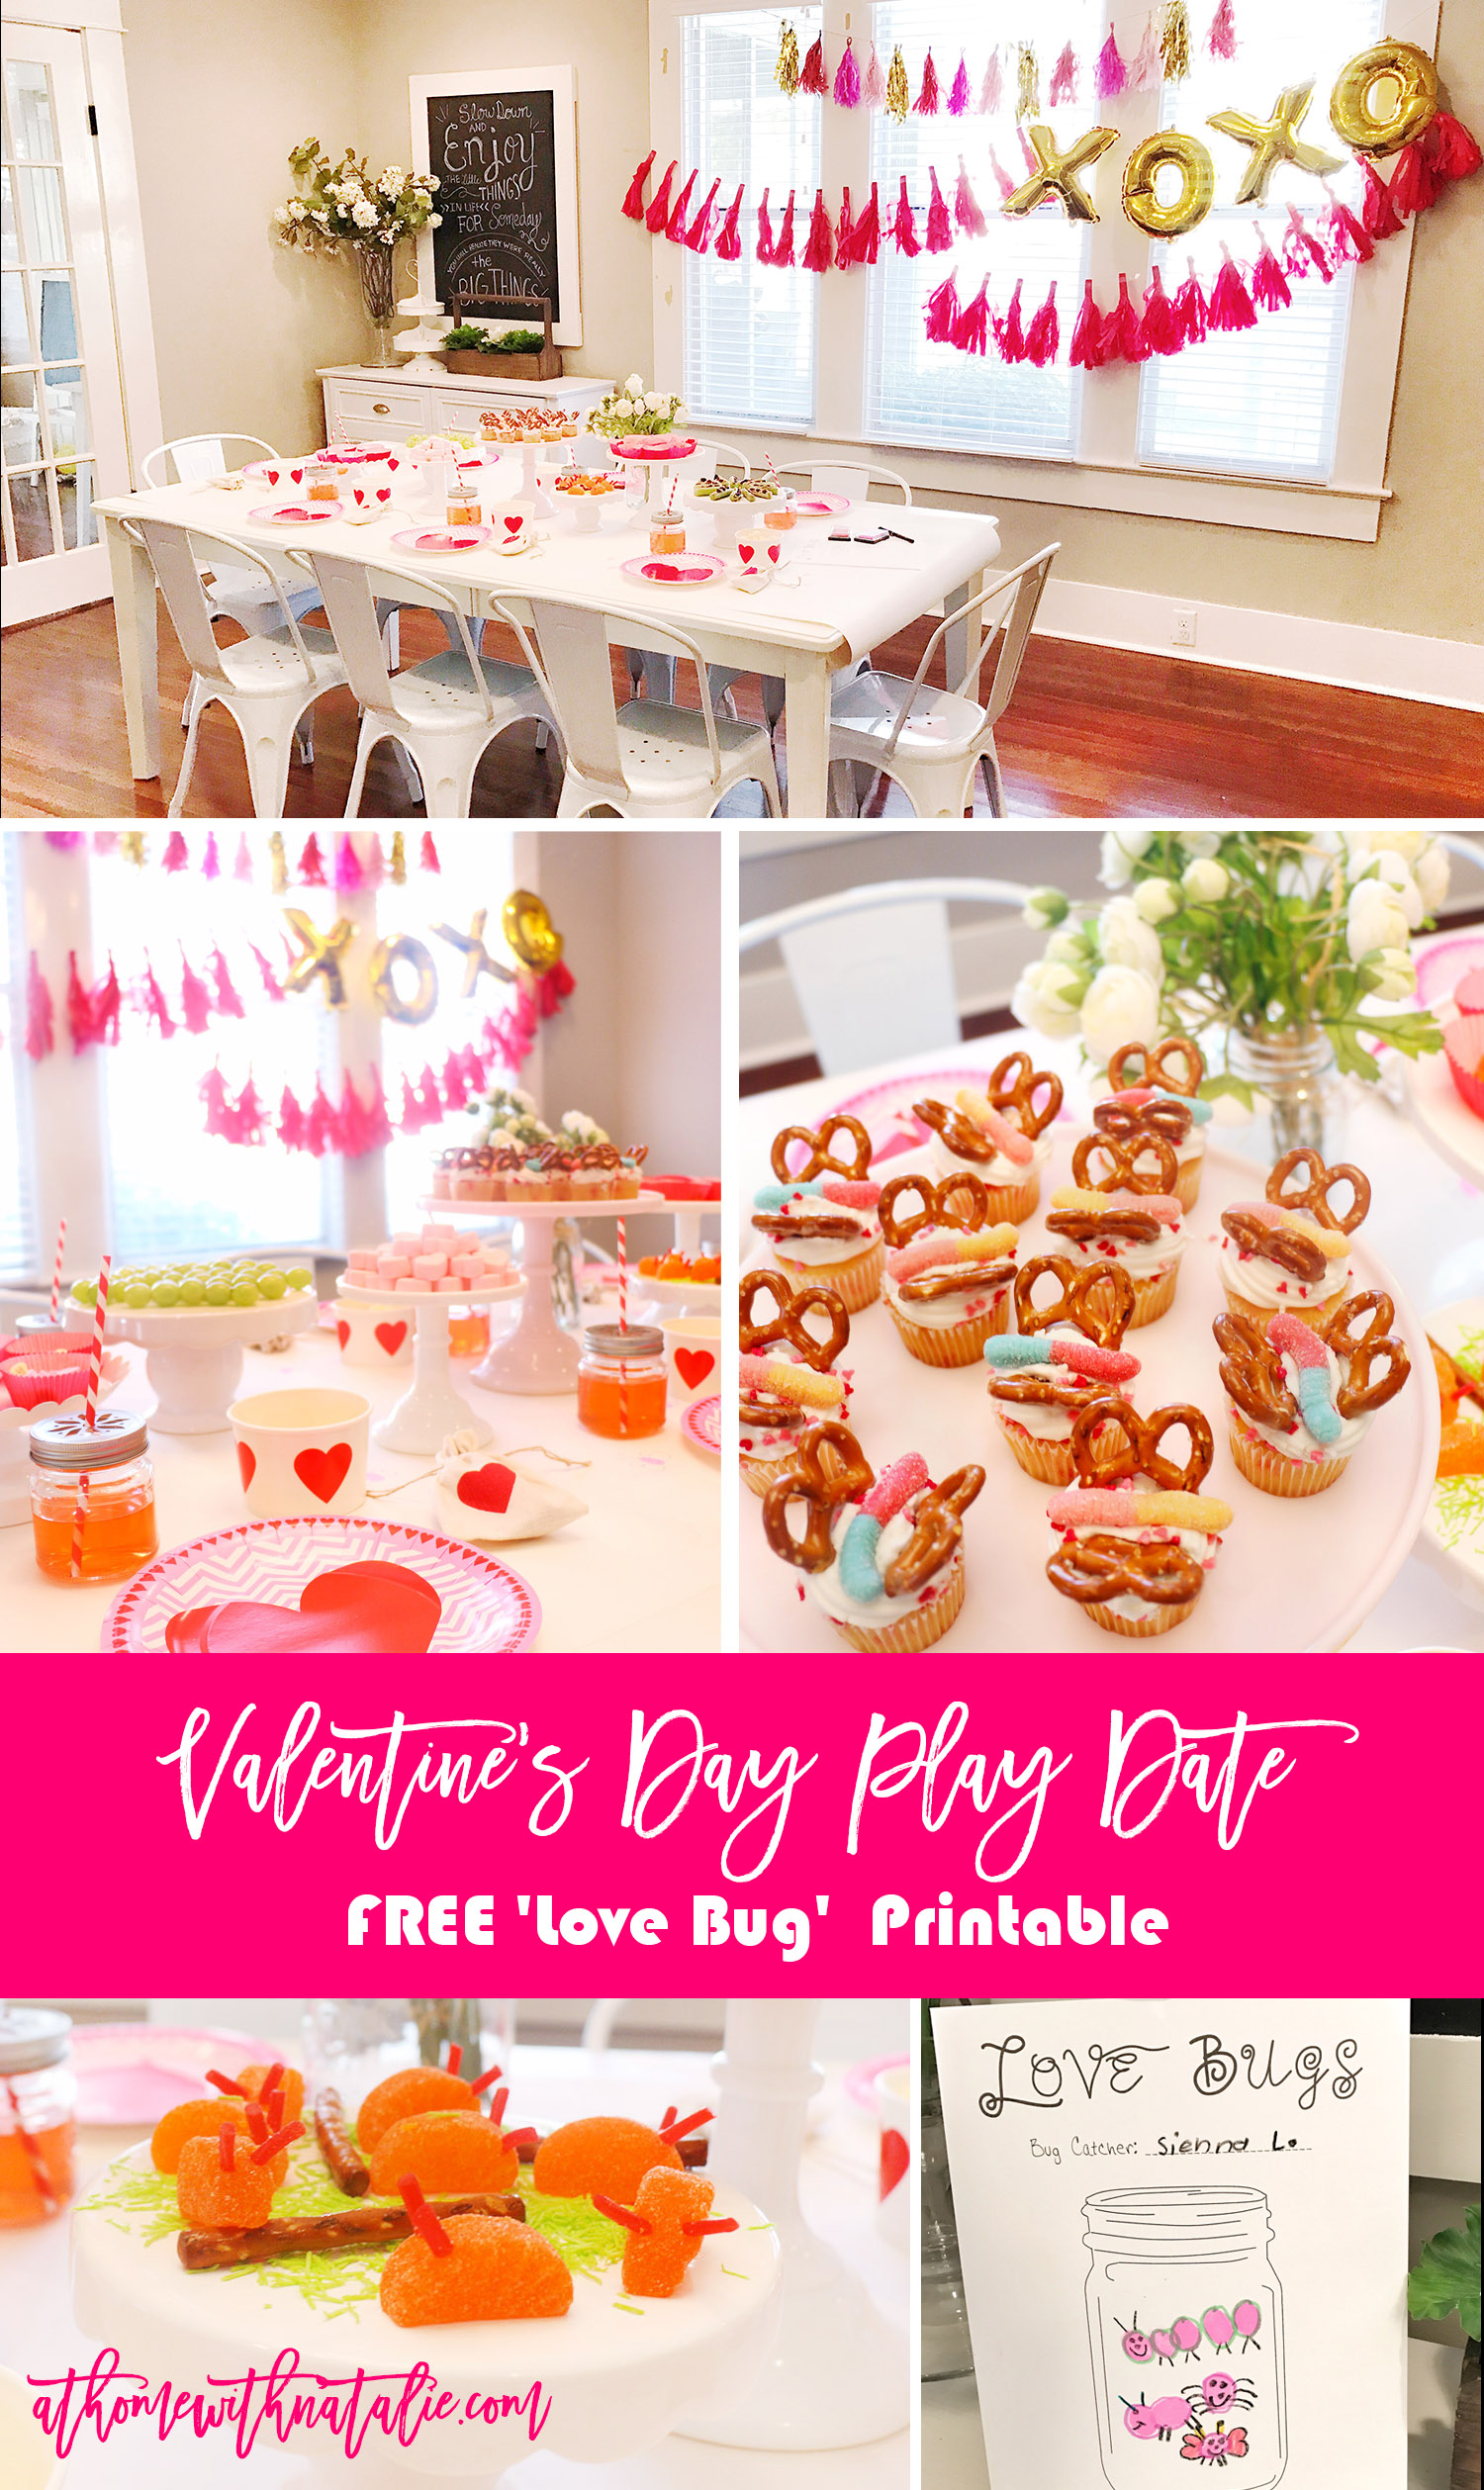 valentine's day diy projects Archives - At Home With Natalie